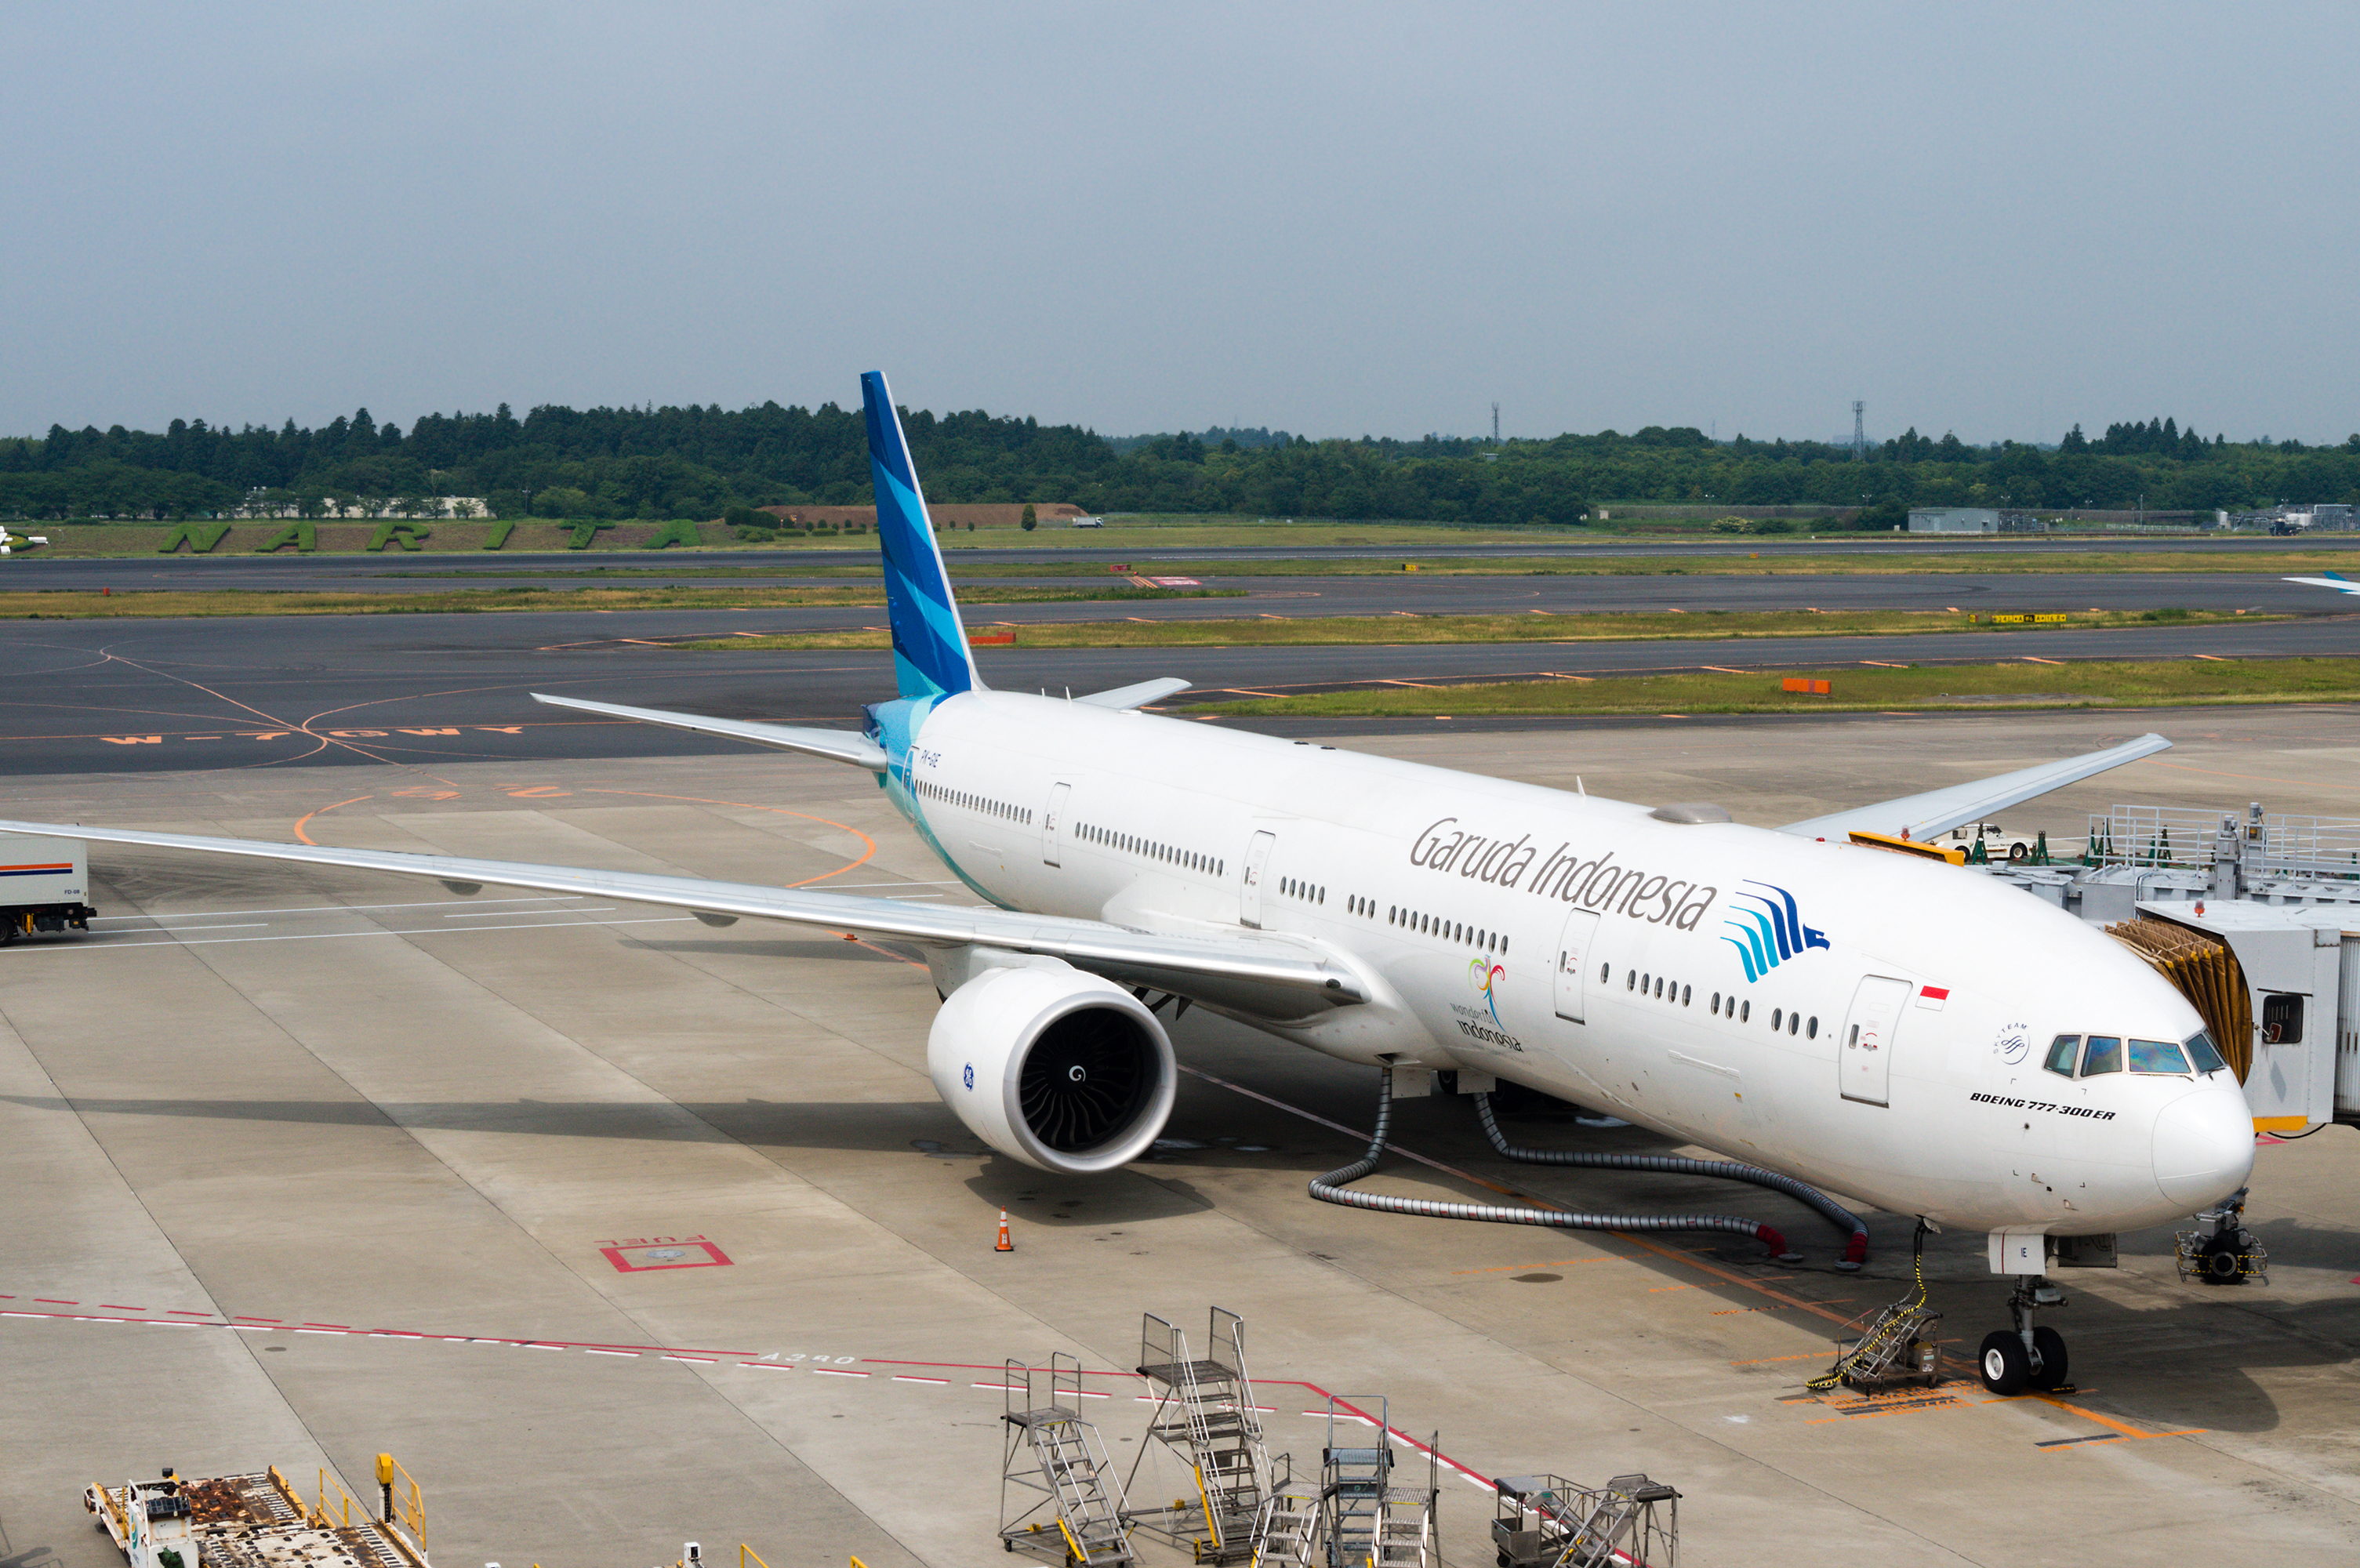 A Garuda Indonesia plane being serviced on the tarmac of Tokyo Narita Airport on June 15, 2015.